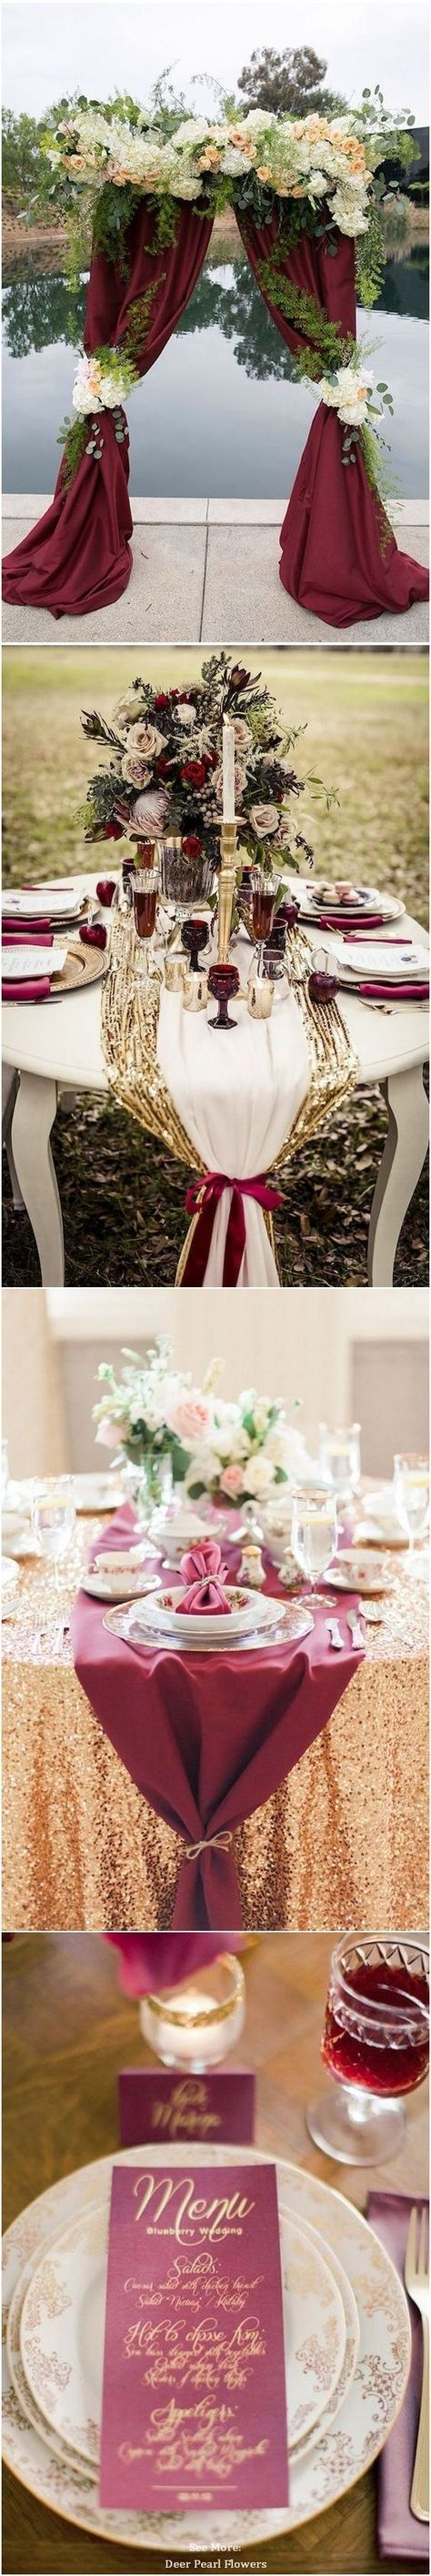 Maroon and white wedding decor   Elegant Fall Burgundy and Gold Wedding Ideas  Queen  Pinterest